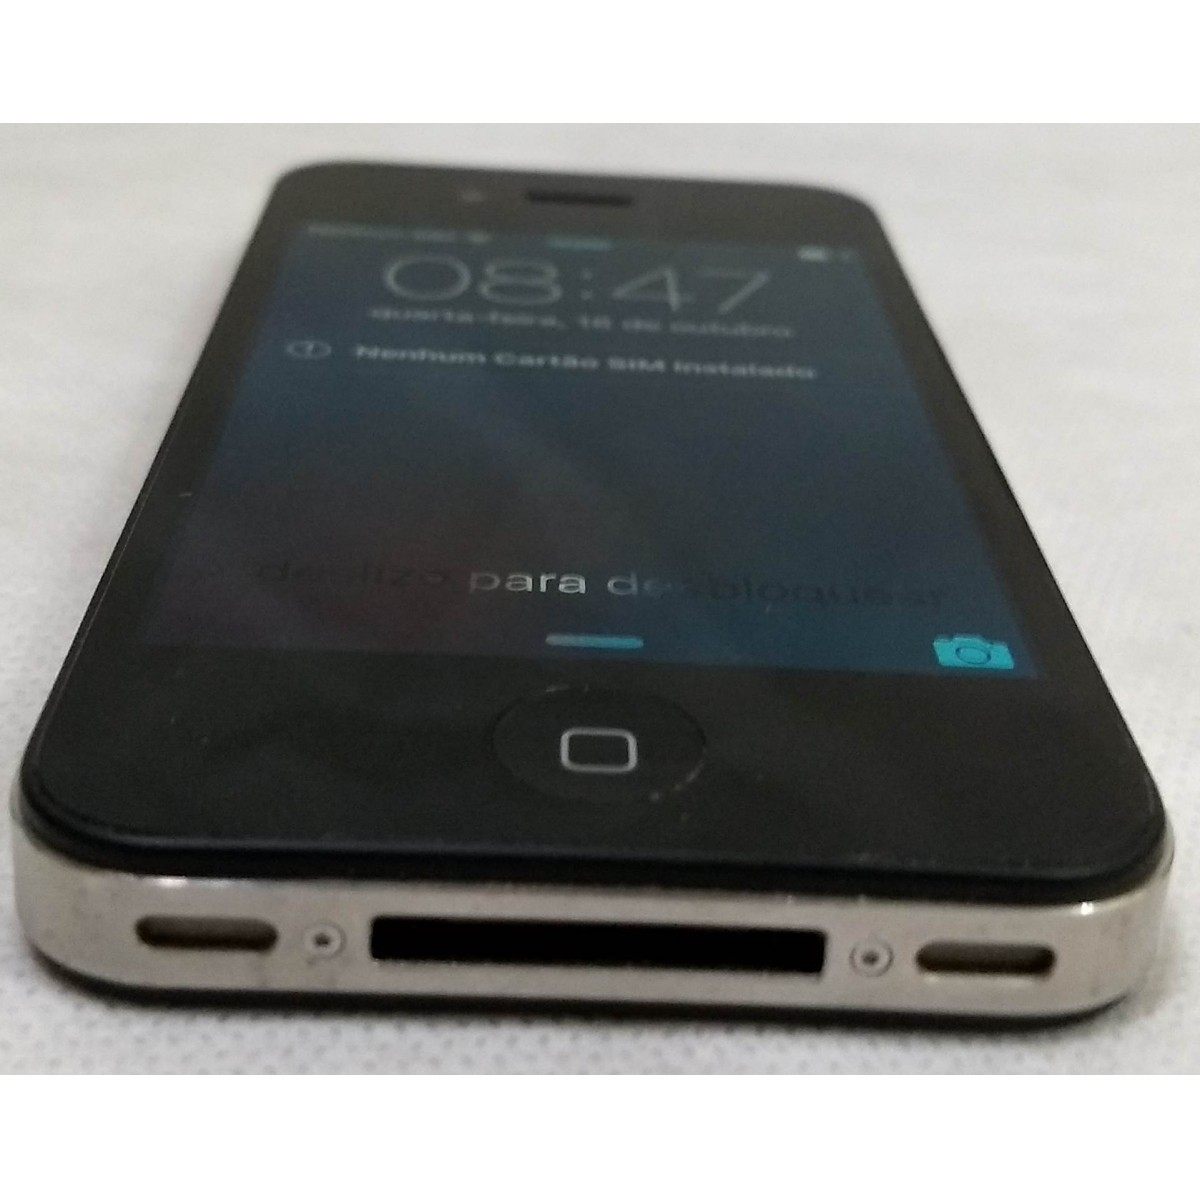 iPhone 4s MD257BZ/A 3.5'' Wi-fi/3G 64GB - Preto